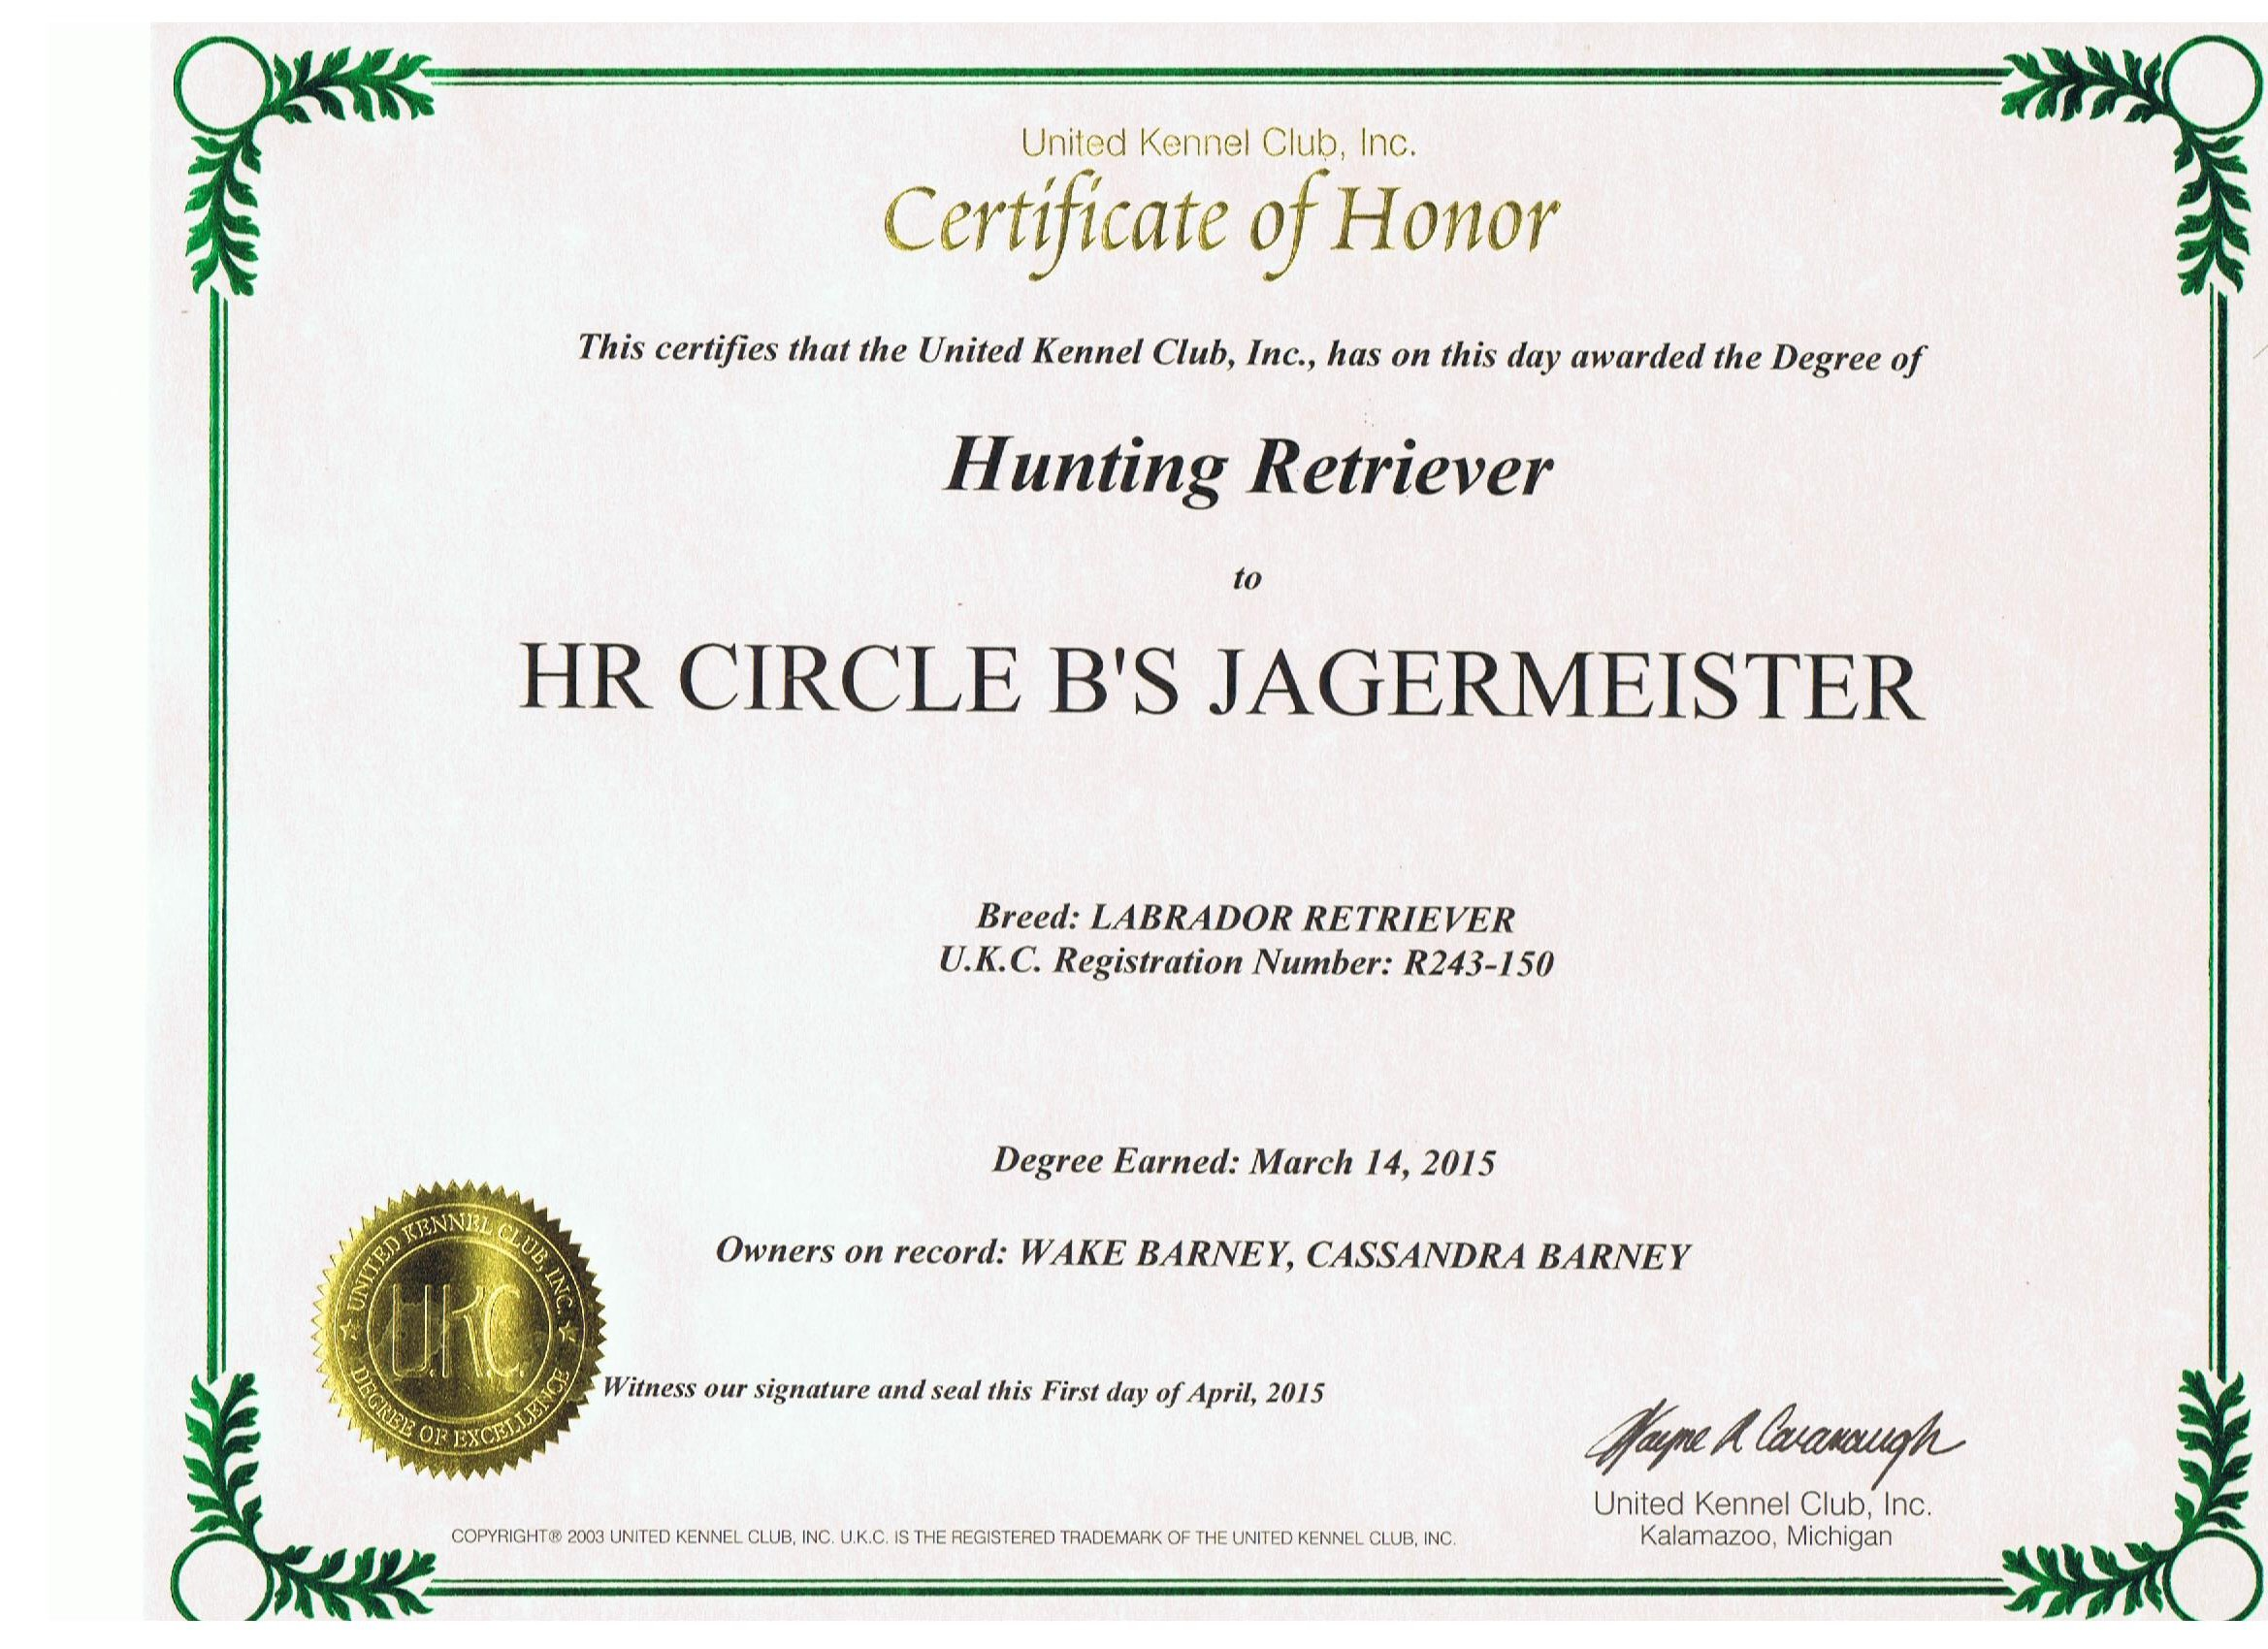 Jager's Certificate Of Honor.